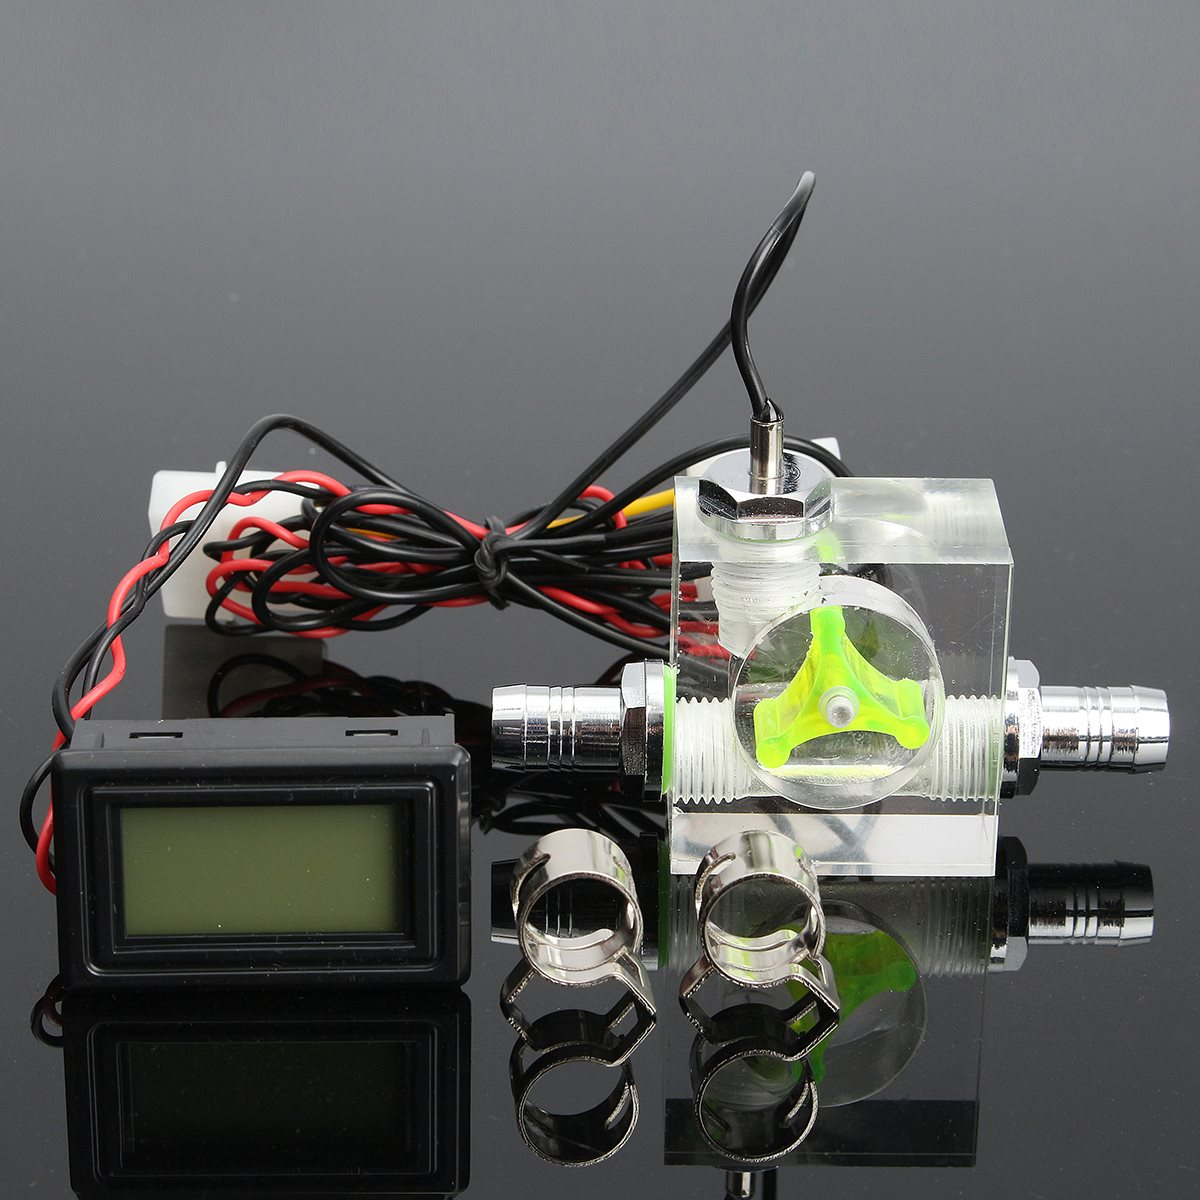 Newest Water Liquid Cooling 3 Way <font><b>Flow</b></font> Meter LED Light Thermometer G1/4 Threaded Connector